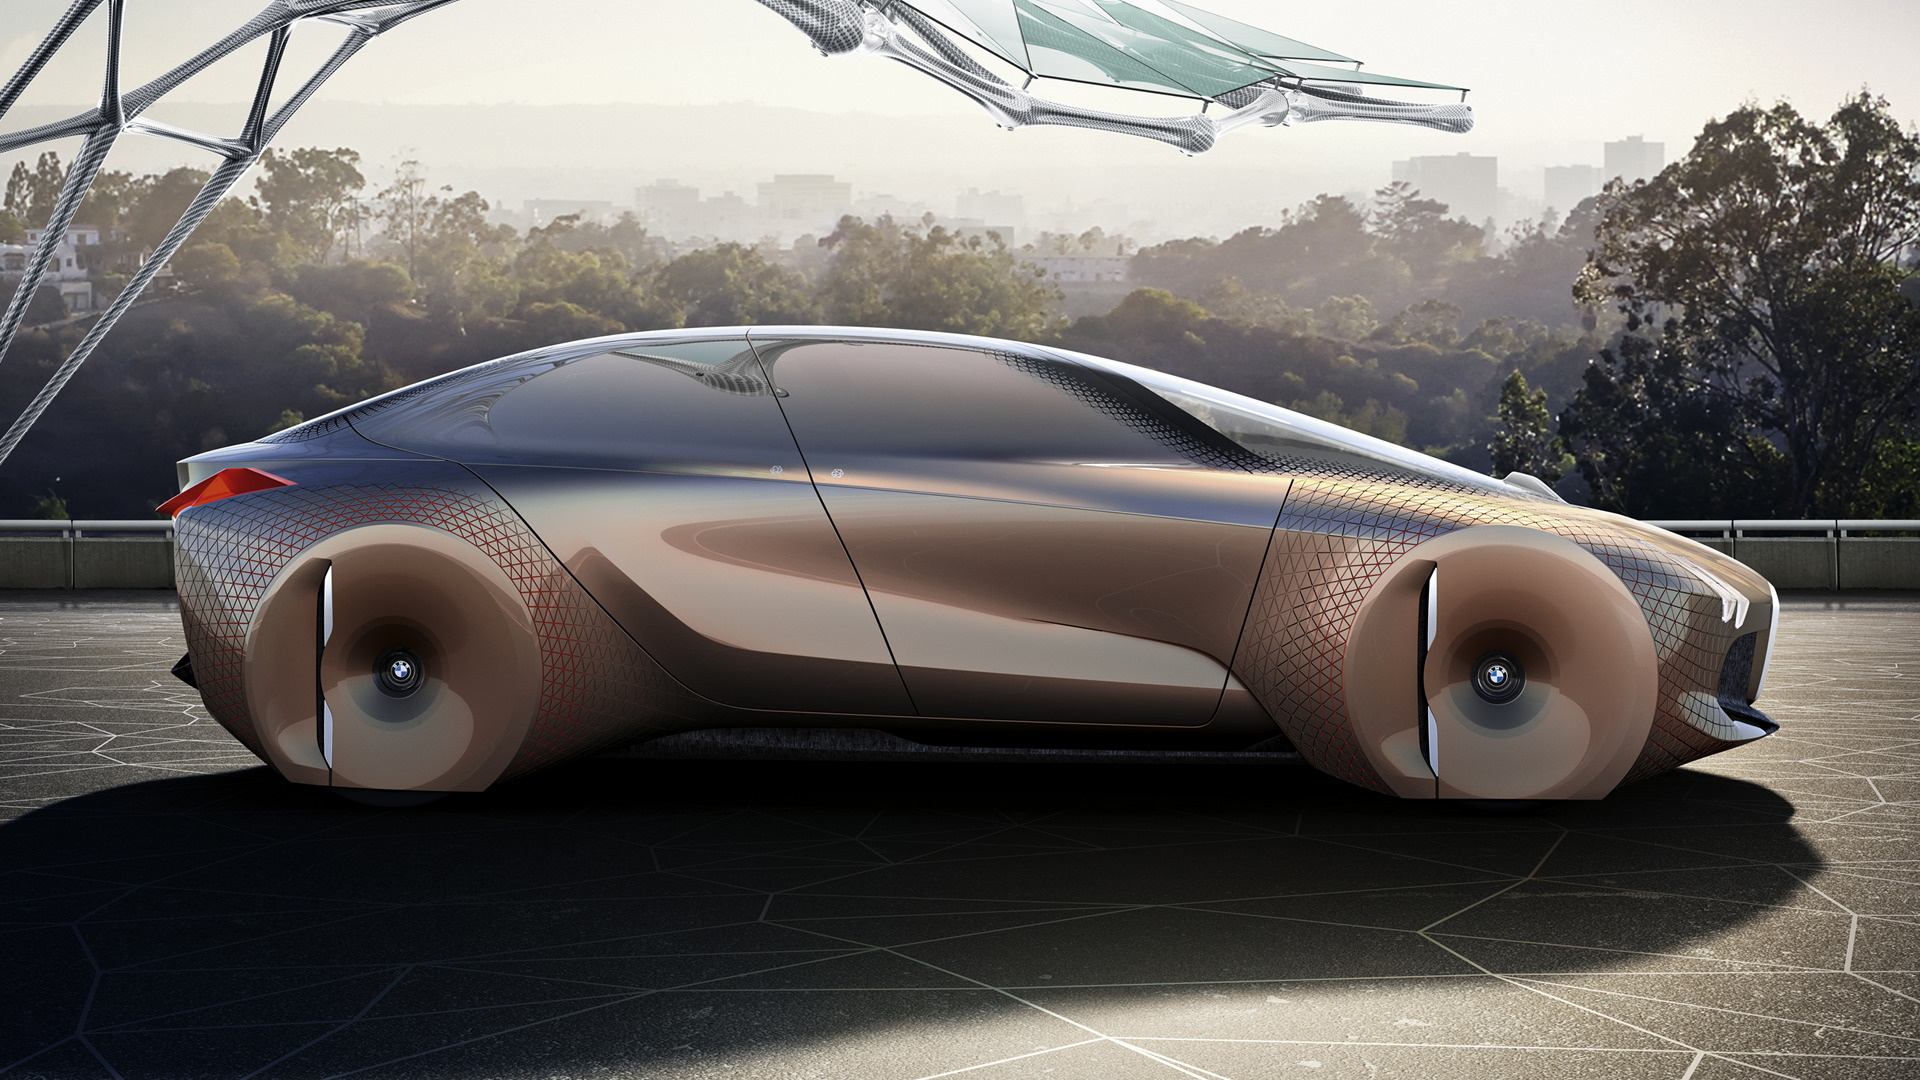 BMW Vision Next 100 (2016) Wallpapers and HD Images - Car ...